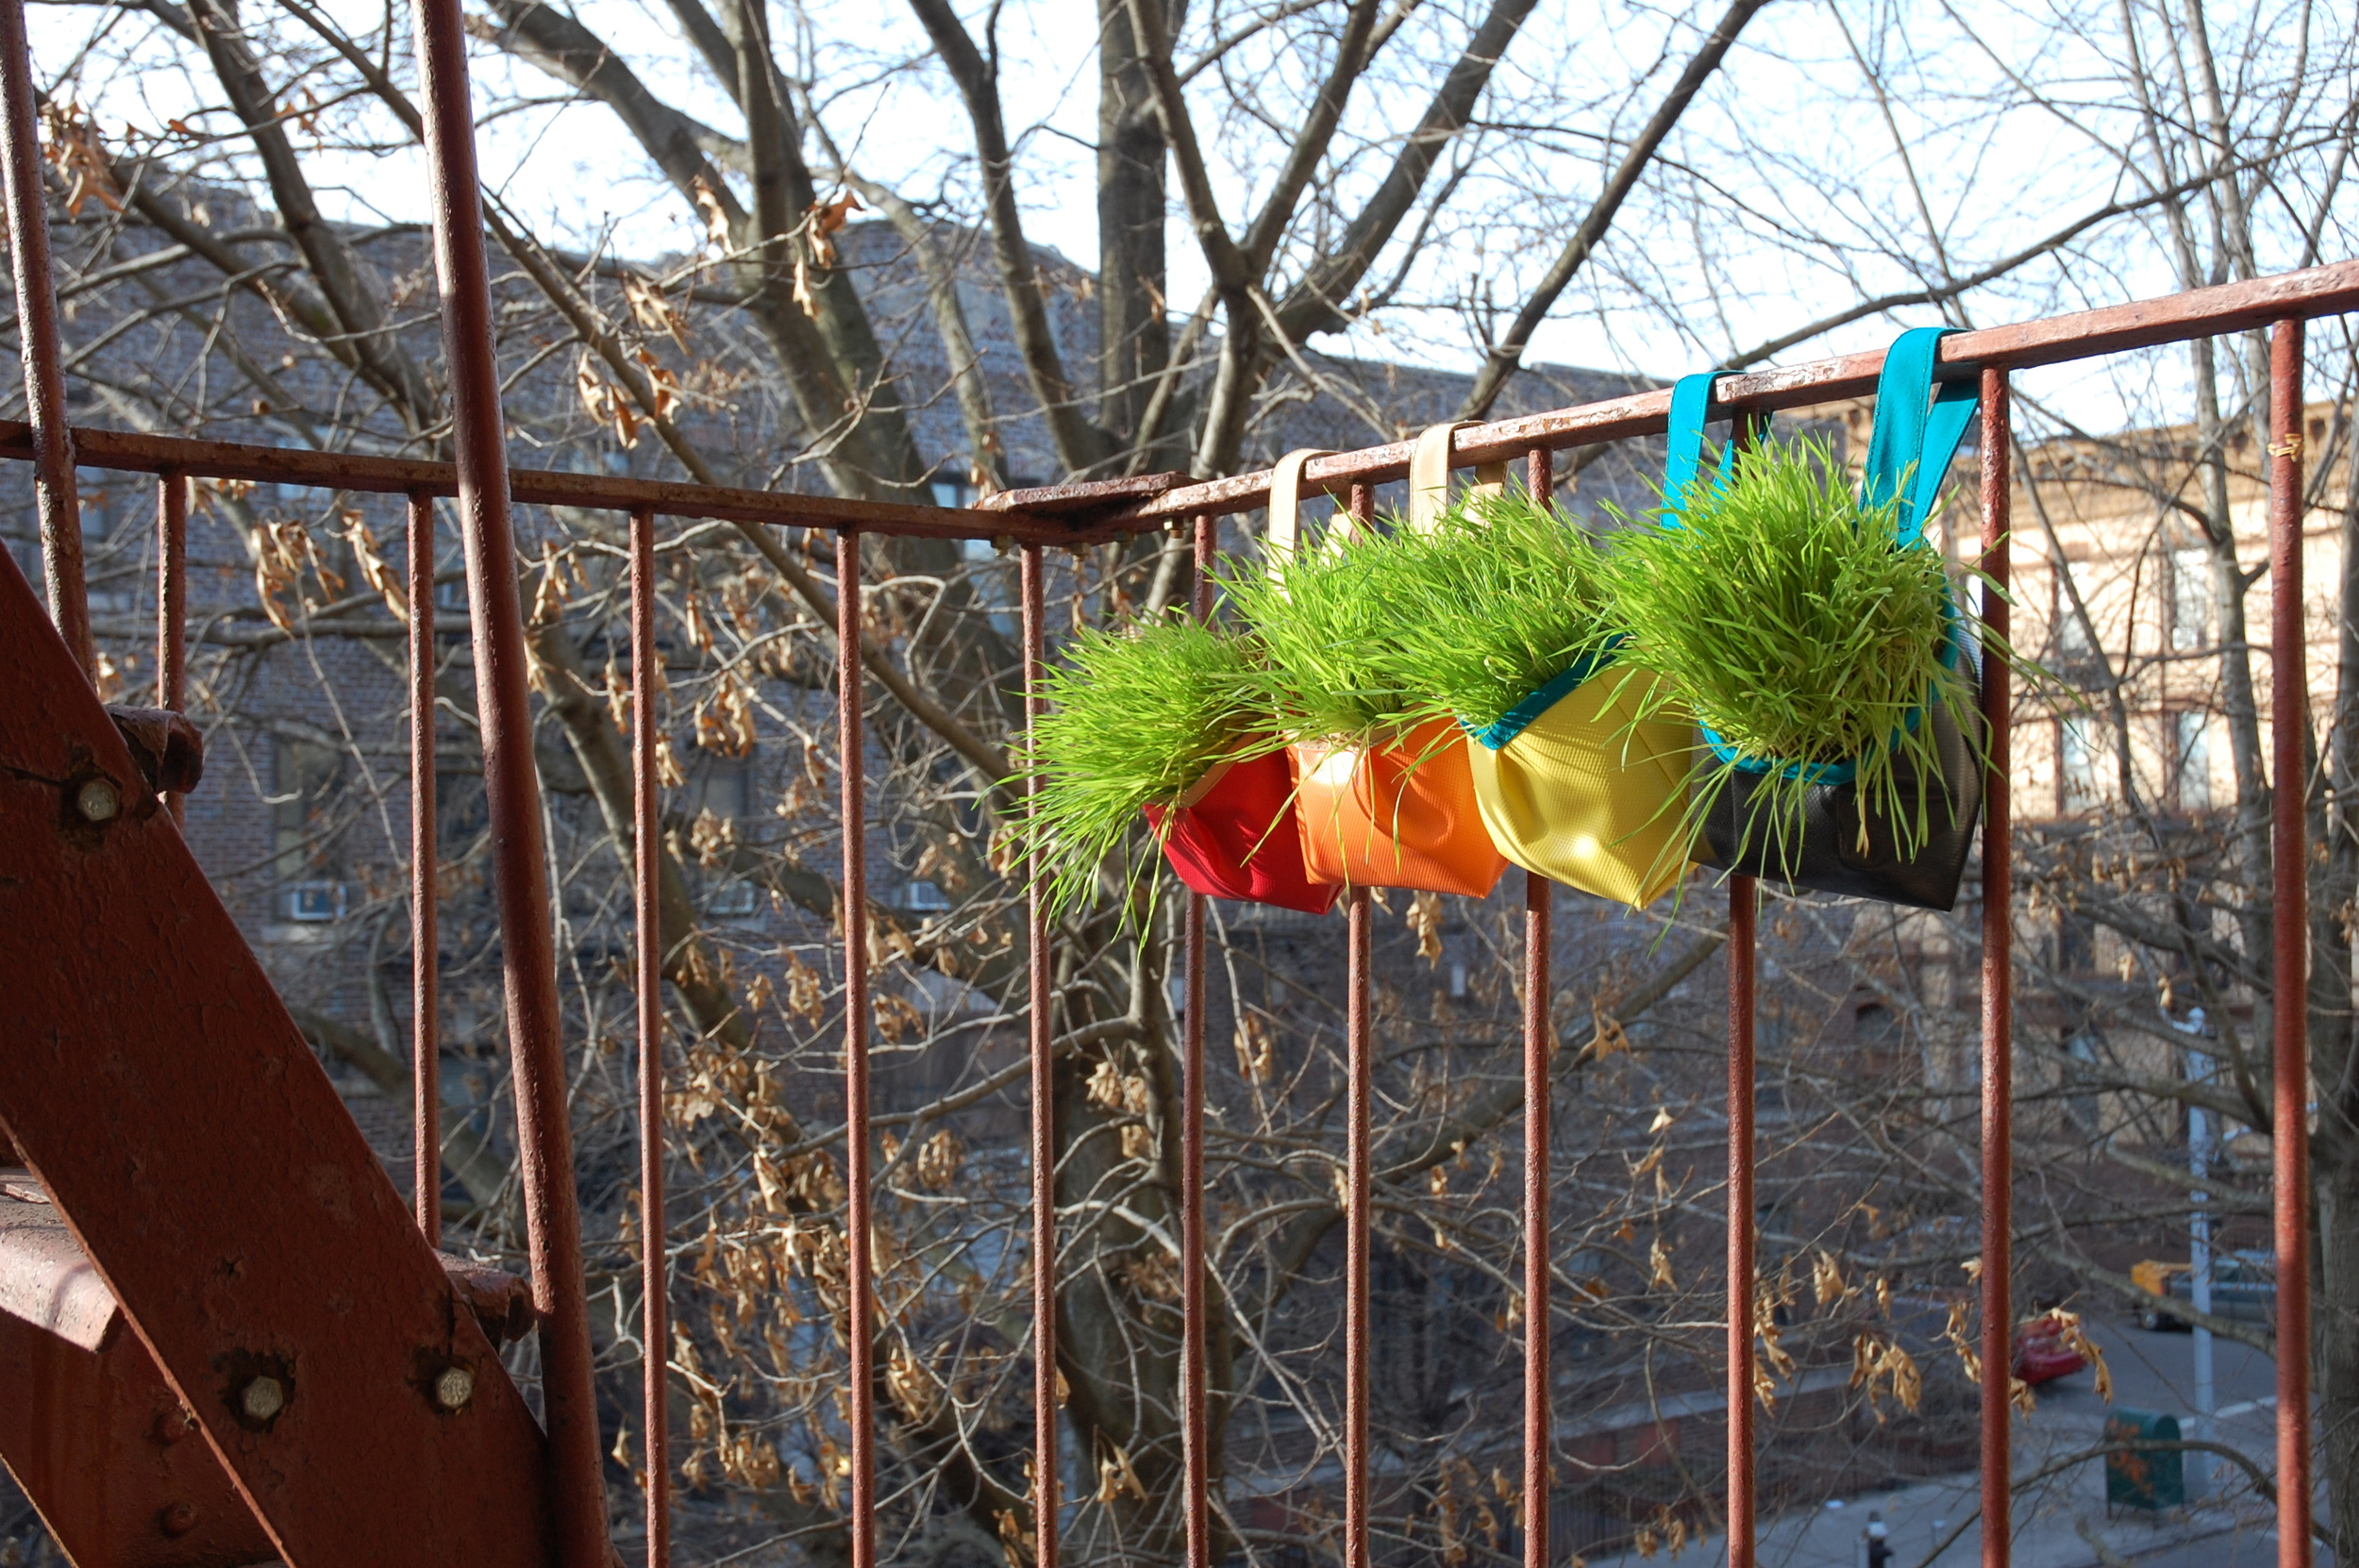 Colorful garden tote planters brightening up the fire escape in early spring!